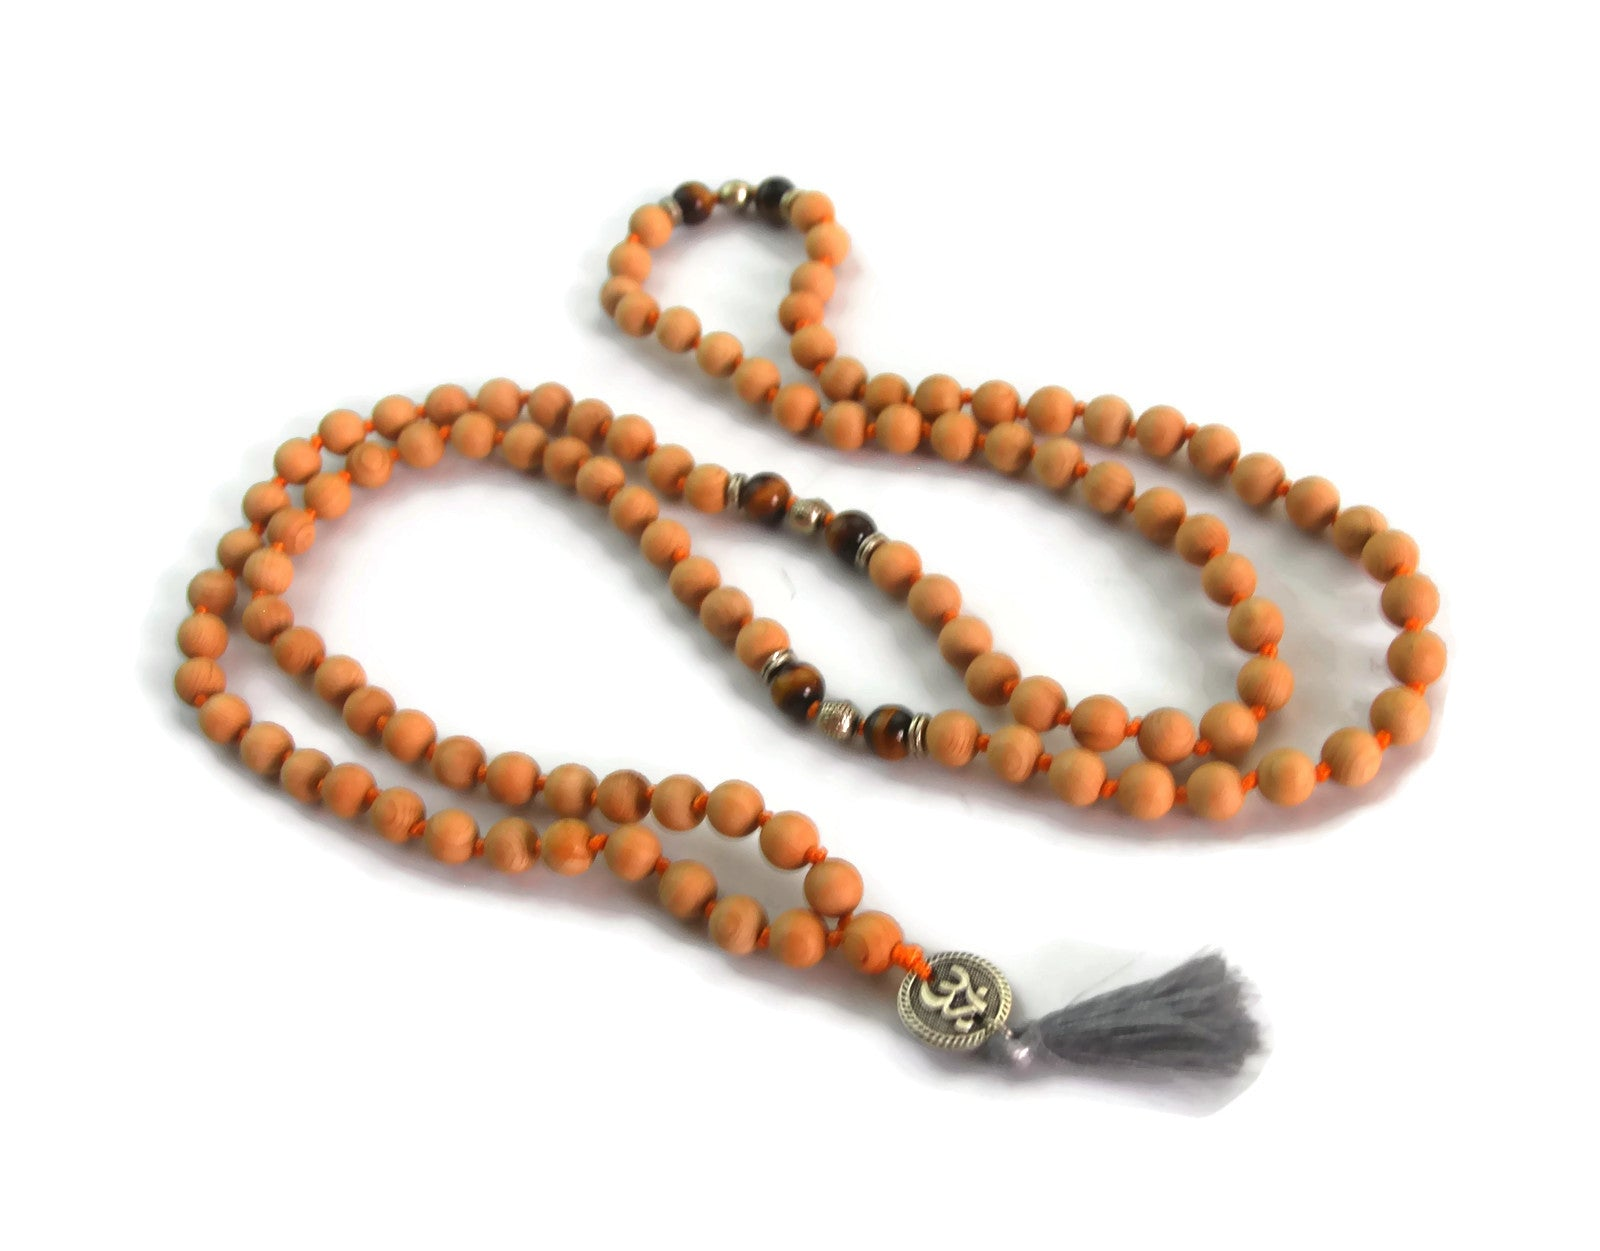 Om Line 8mm Cypress Wood & Tigers Eye Traditional Knotted 108 Meditation Mala Necklace with Om Charm Pendant Solar Plexus Chakra